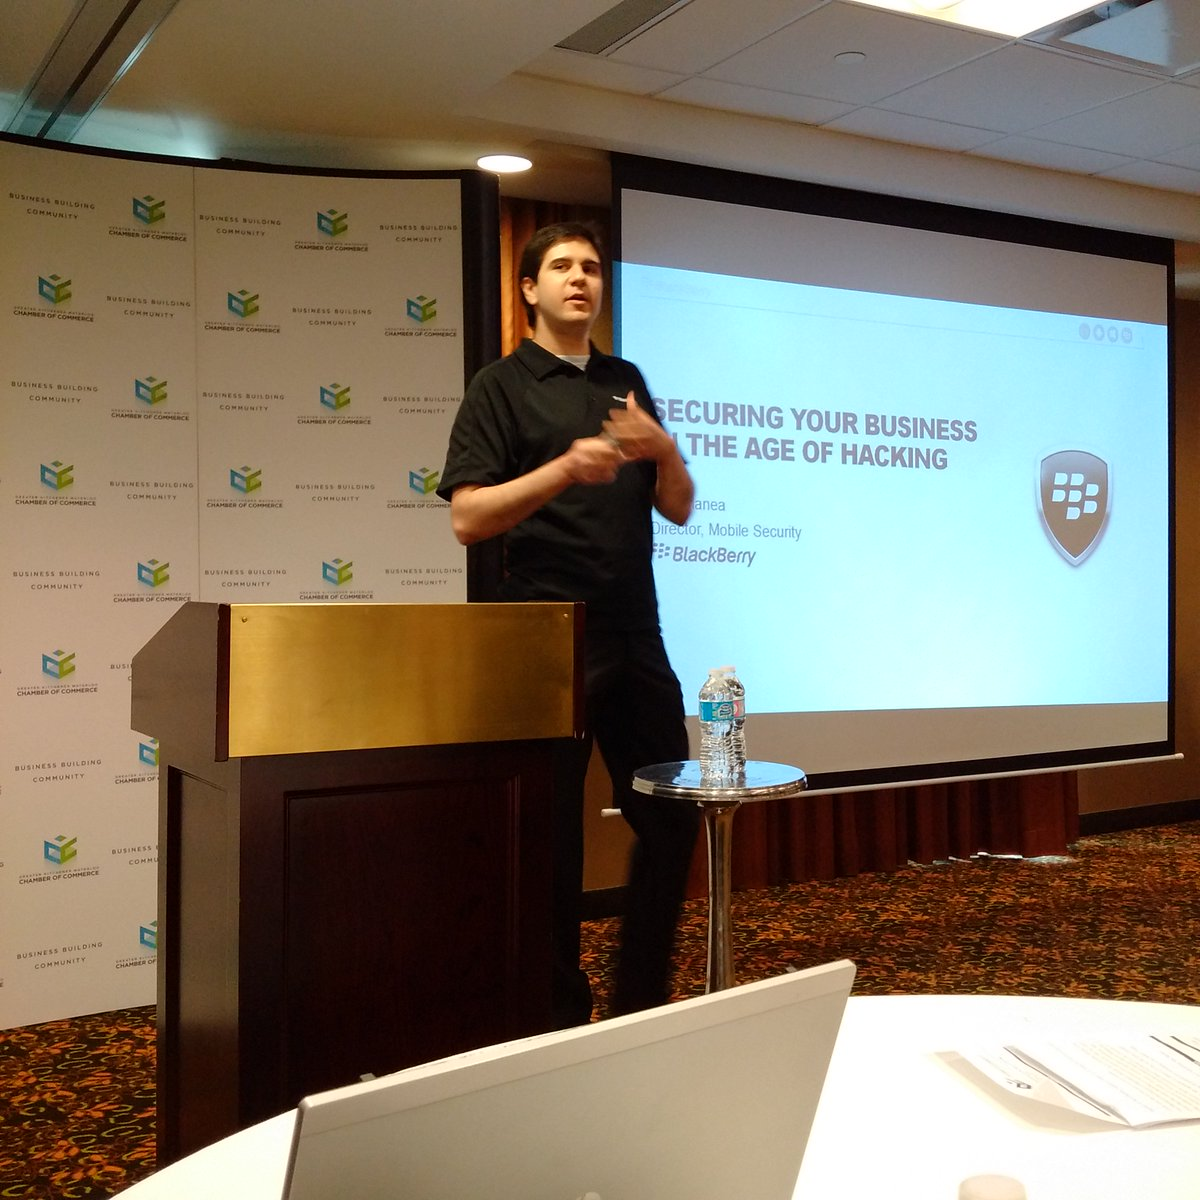 """Alex Manea @BlackBerry on """"Securing Your Business in the Age of Hacking"""" @HomewoodSuites @McNainComm https://t.co/1JA0k63Ix4"""